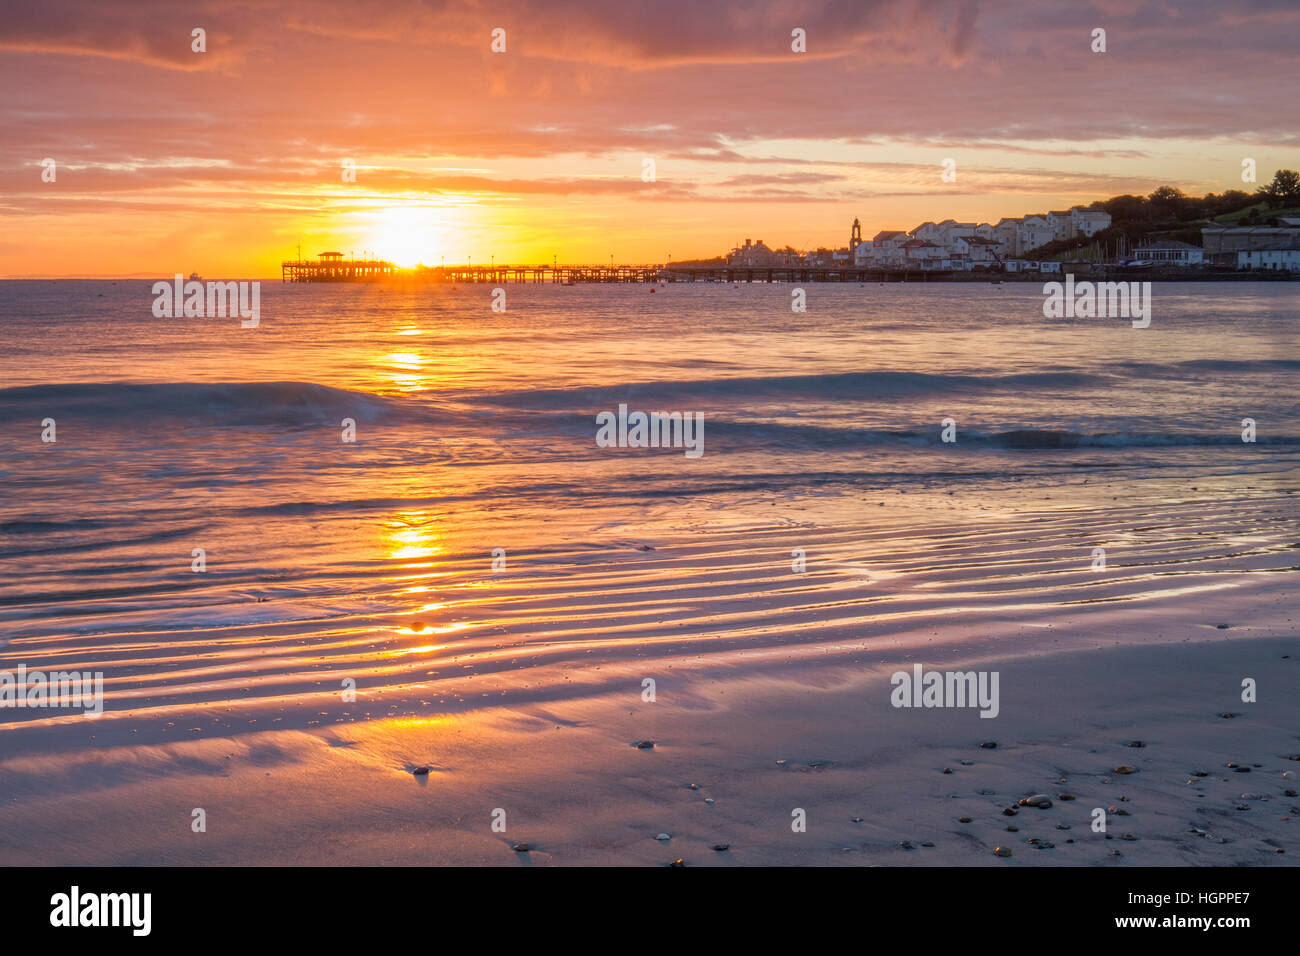 Beautiful Sun Rising Over Silhouette Pier And Waves On Beach Stock